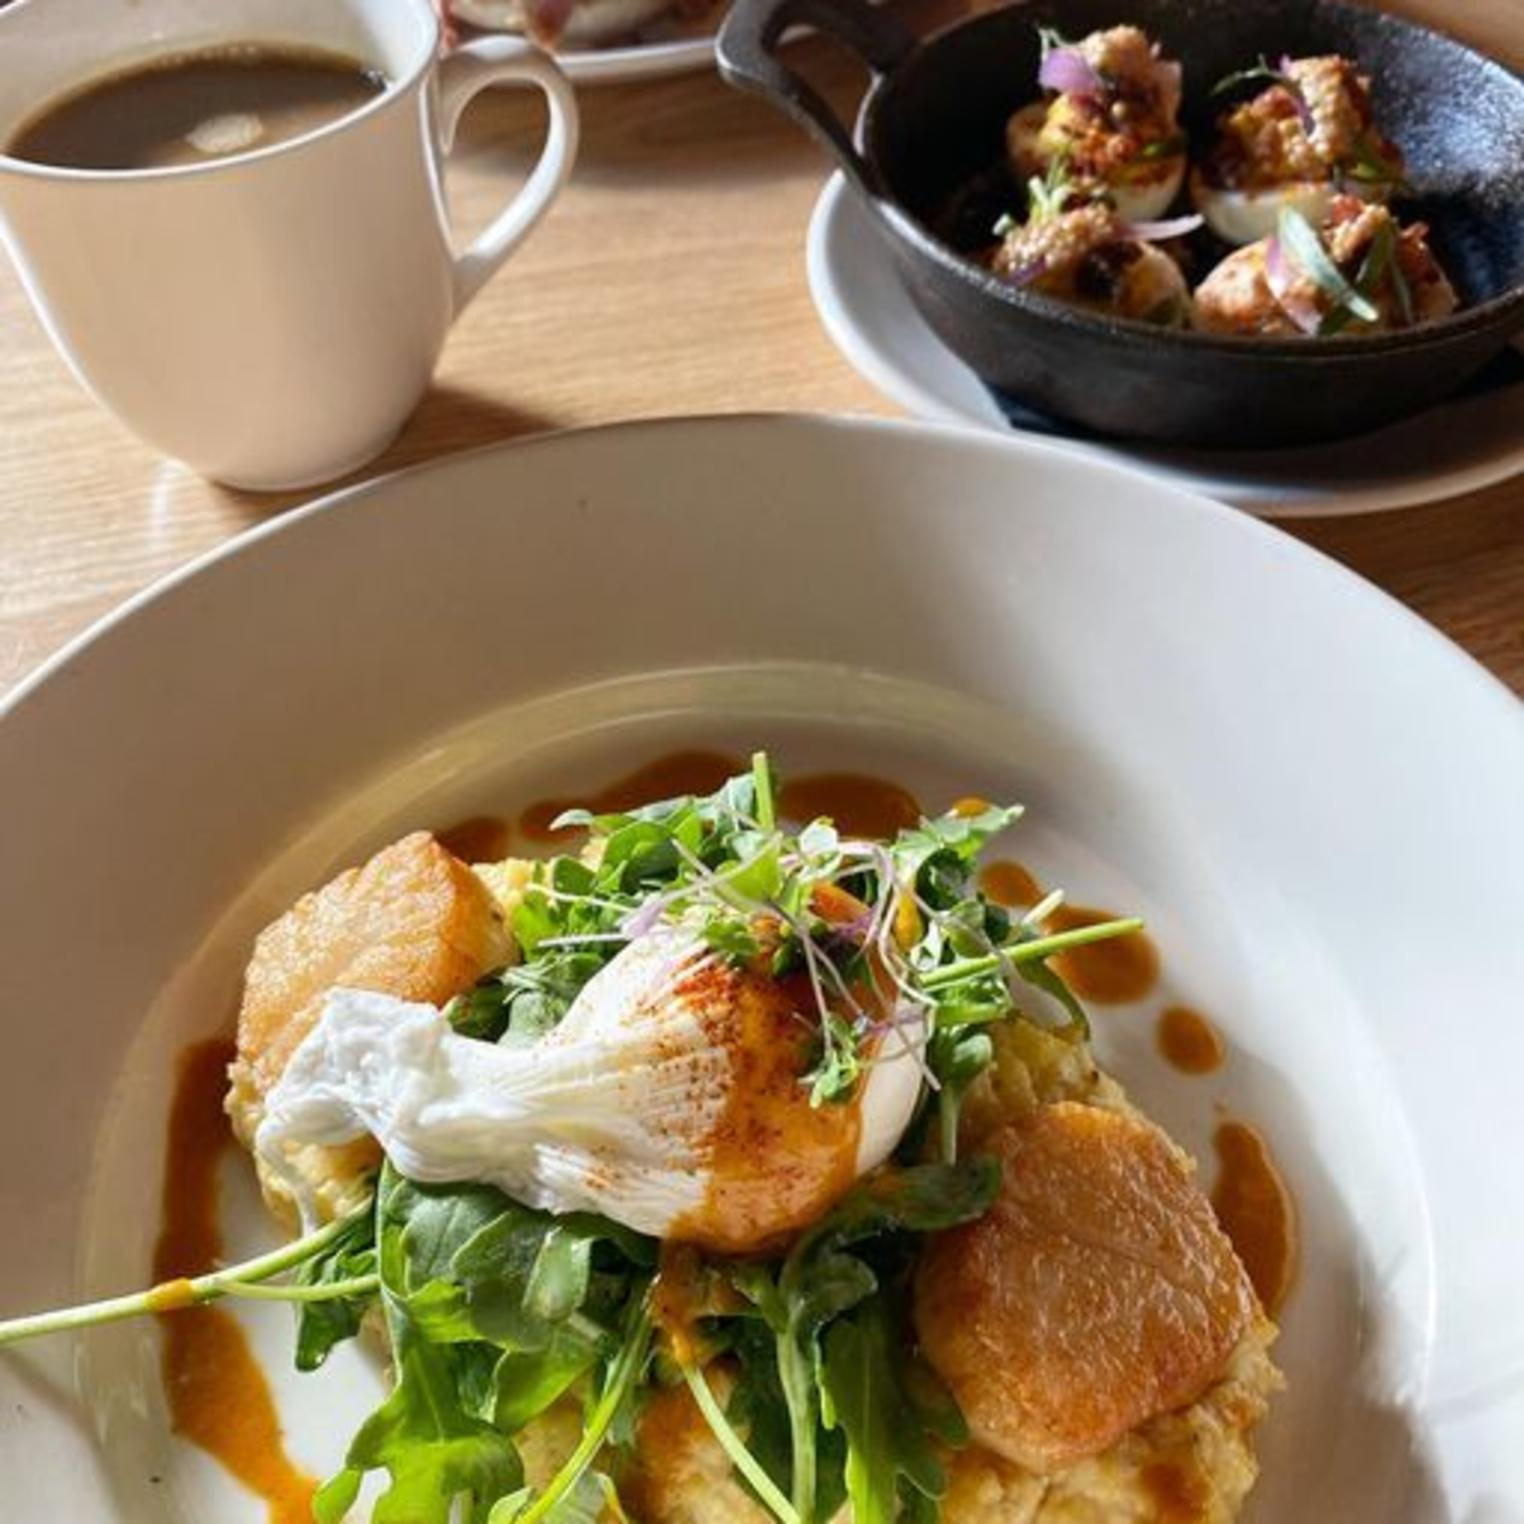 Sunday Brunch at The Millworks